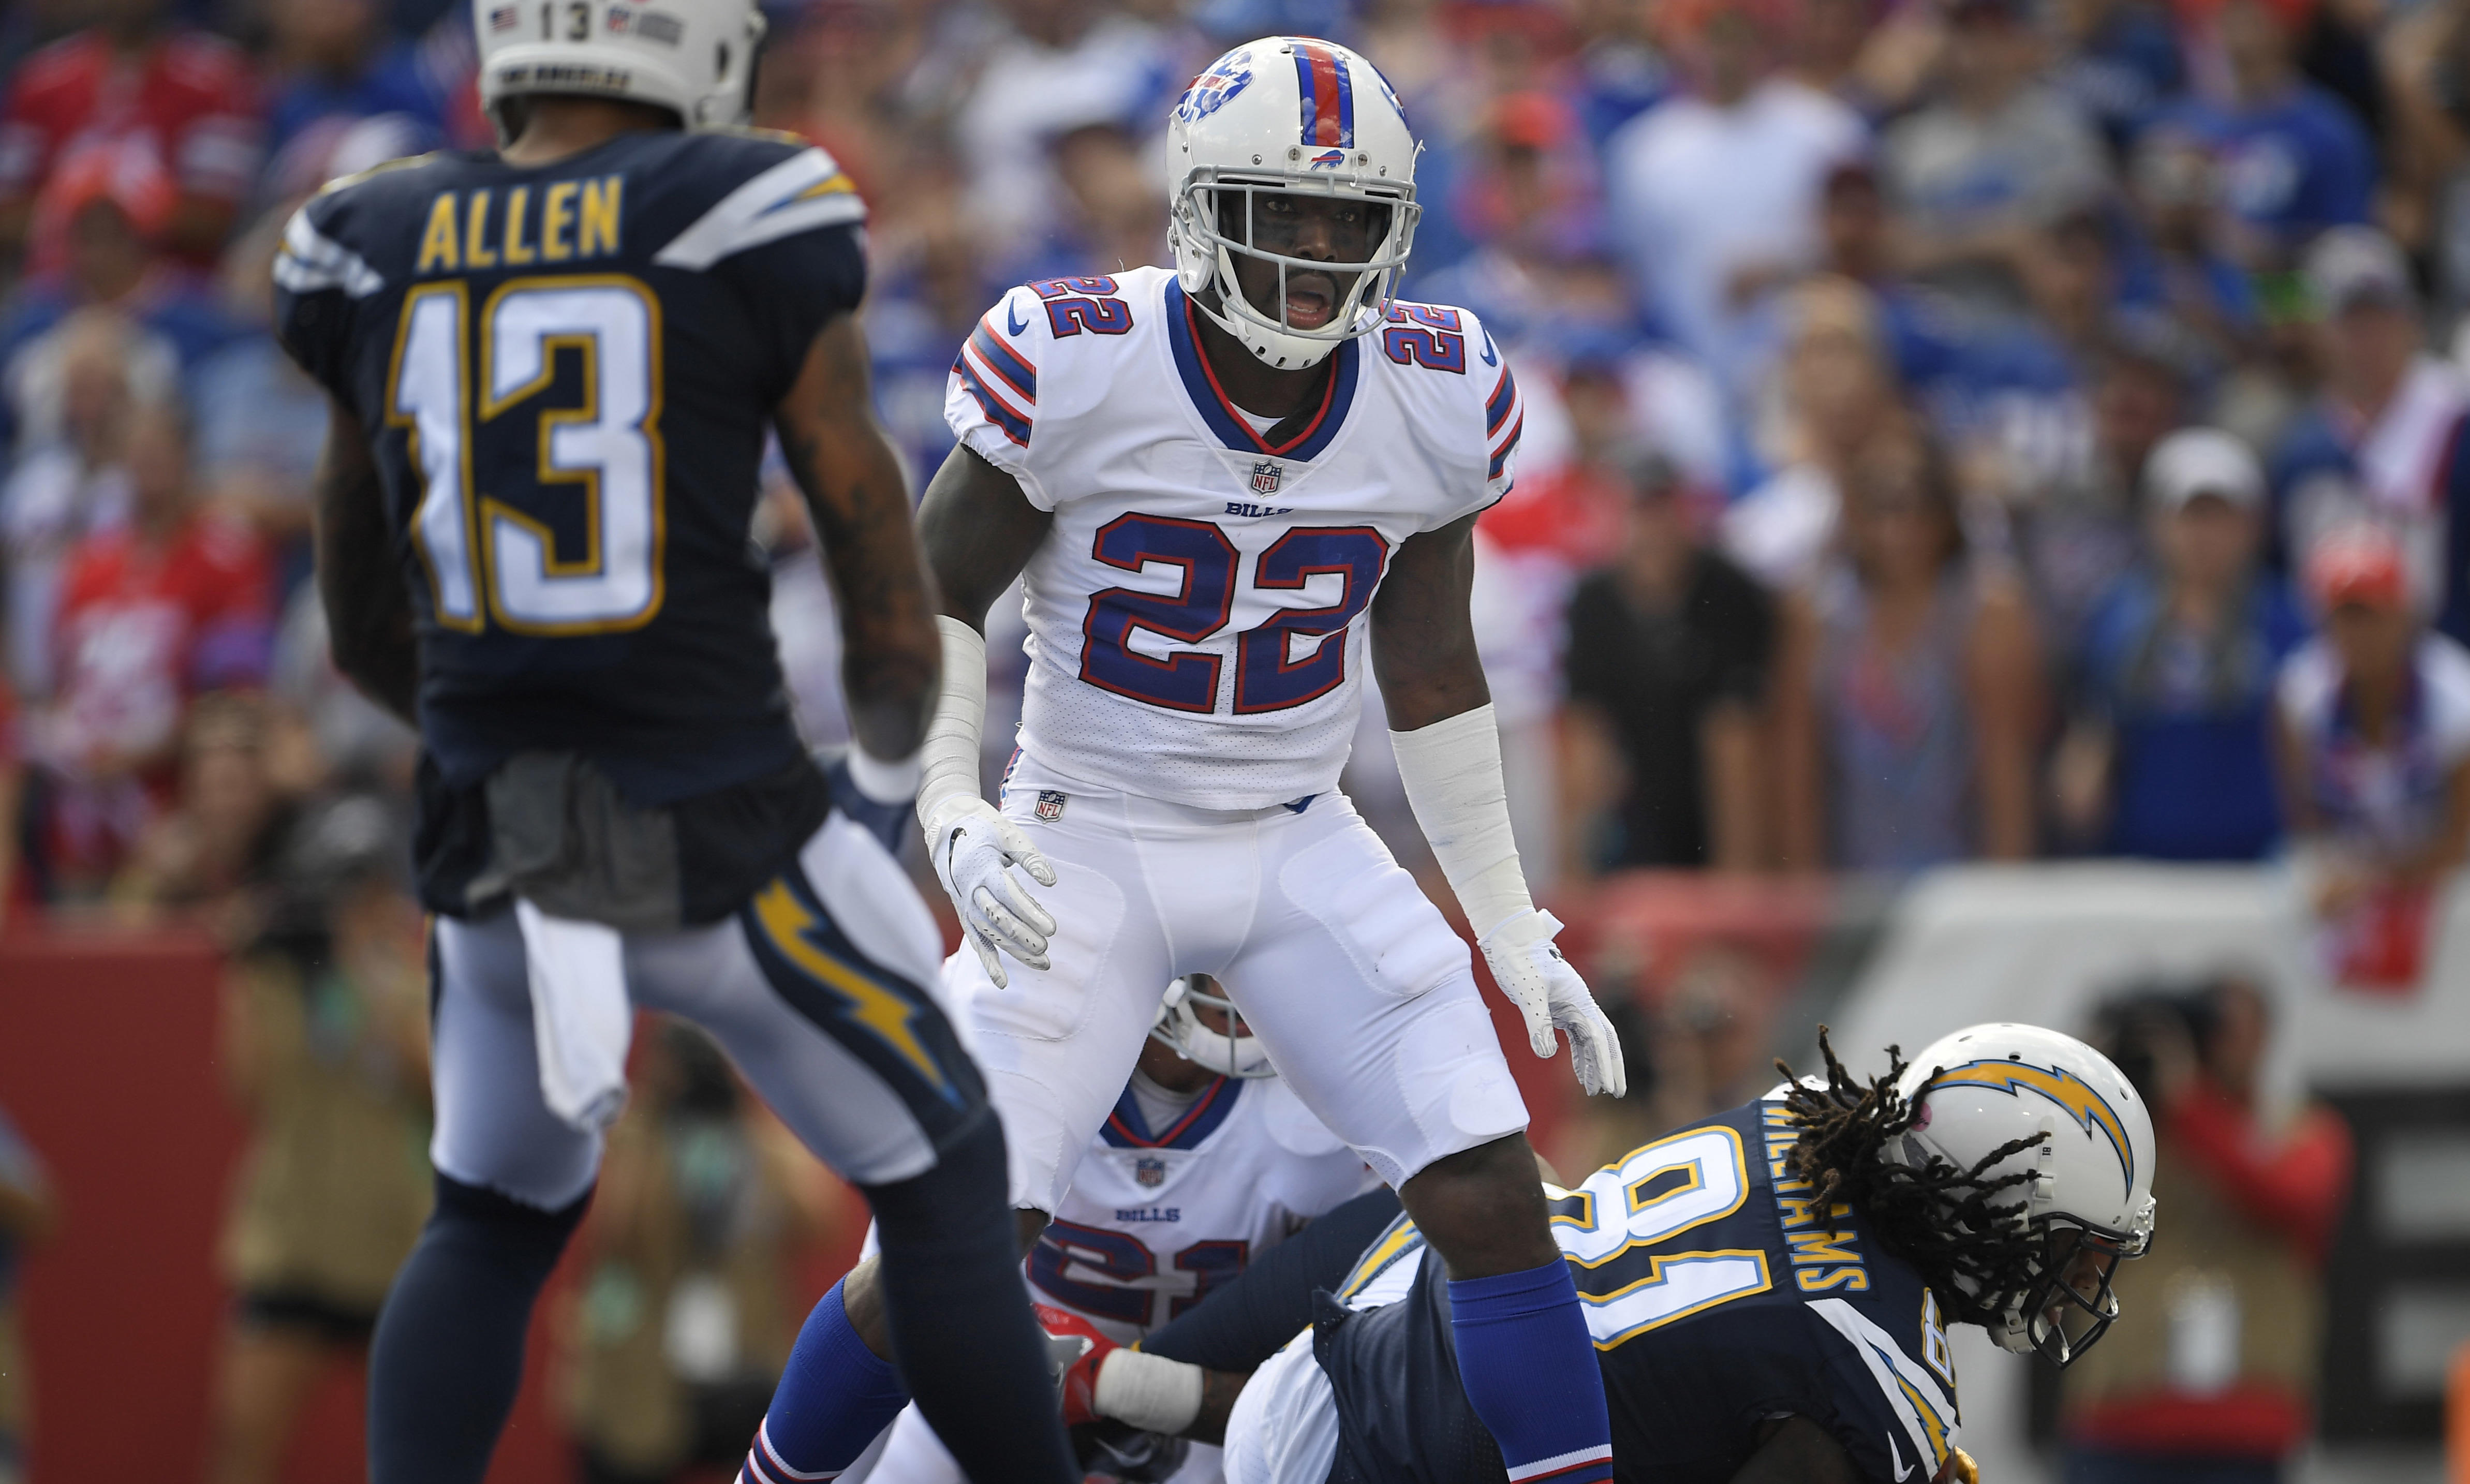 uk availability a1840 d5585 Vontae Davis, Buffalo Bills player, abruptly retires at halftime during Los  Angeles Chargers game